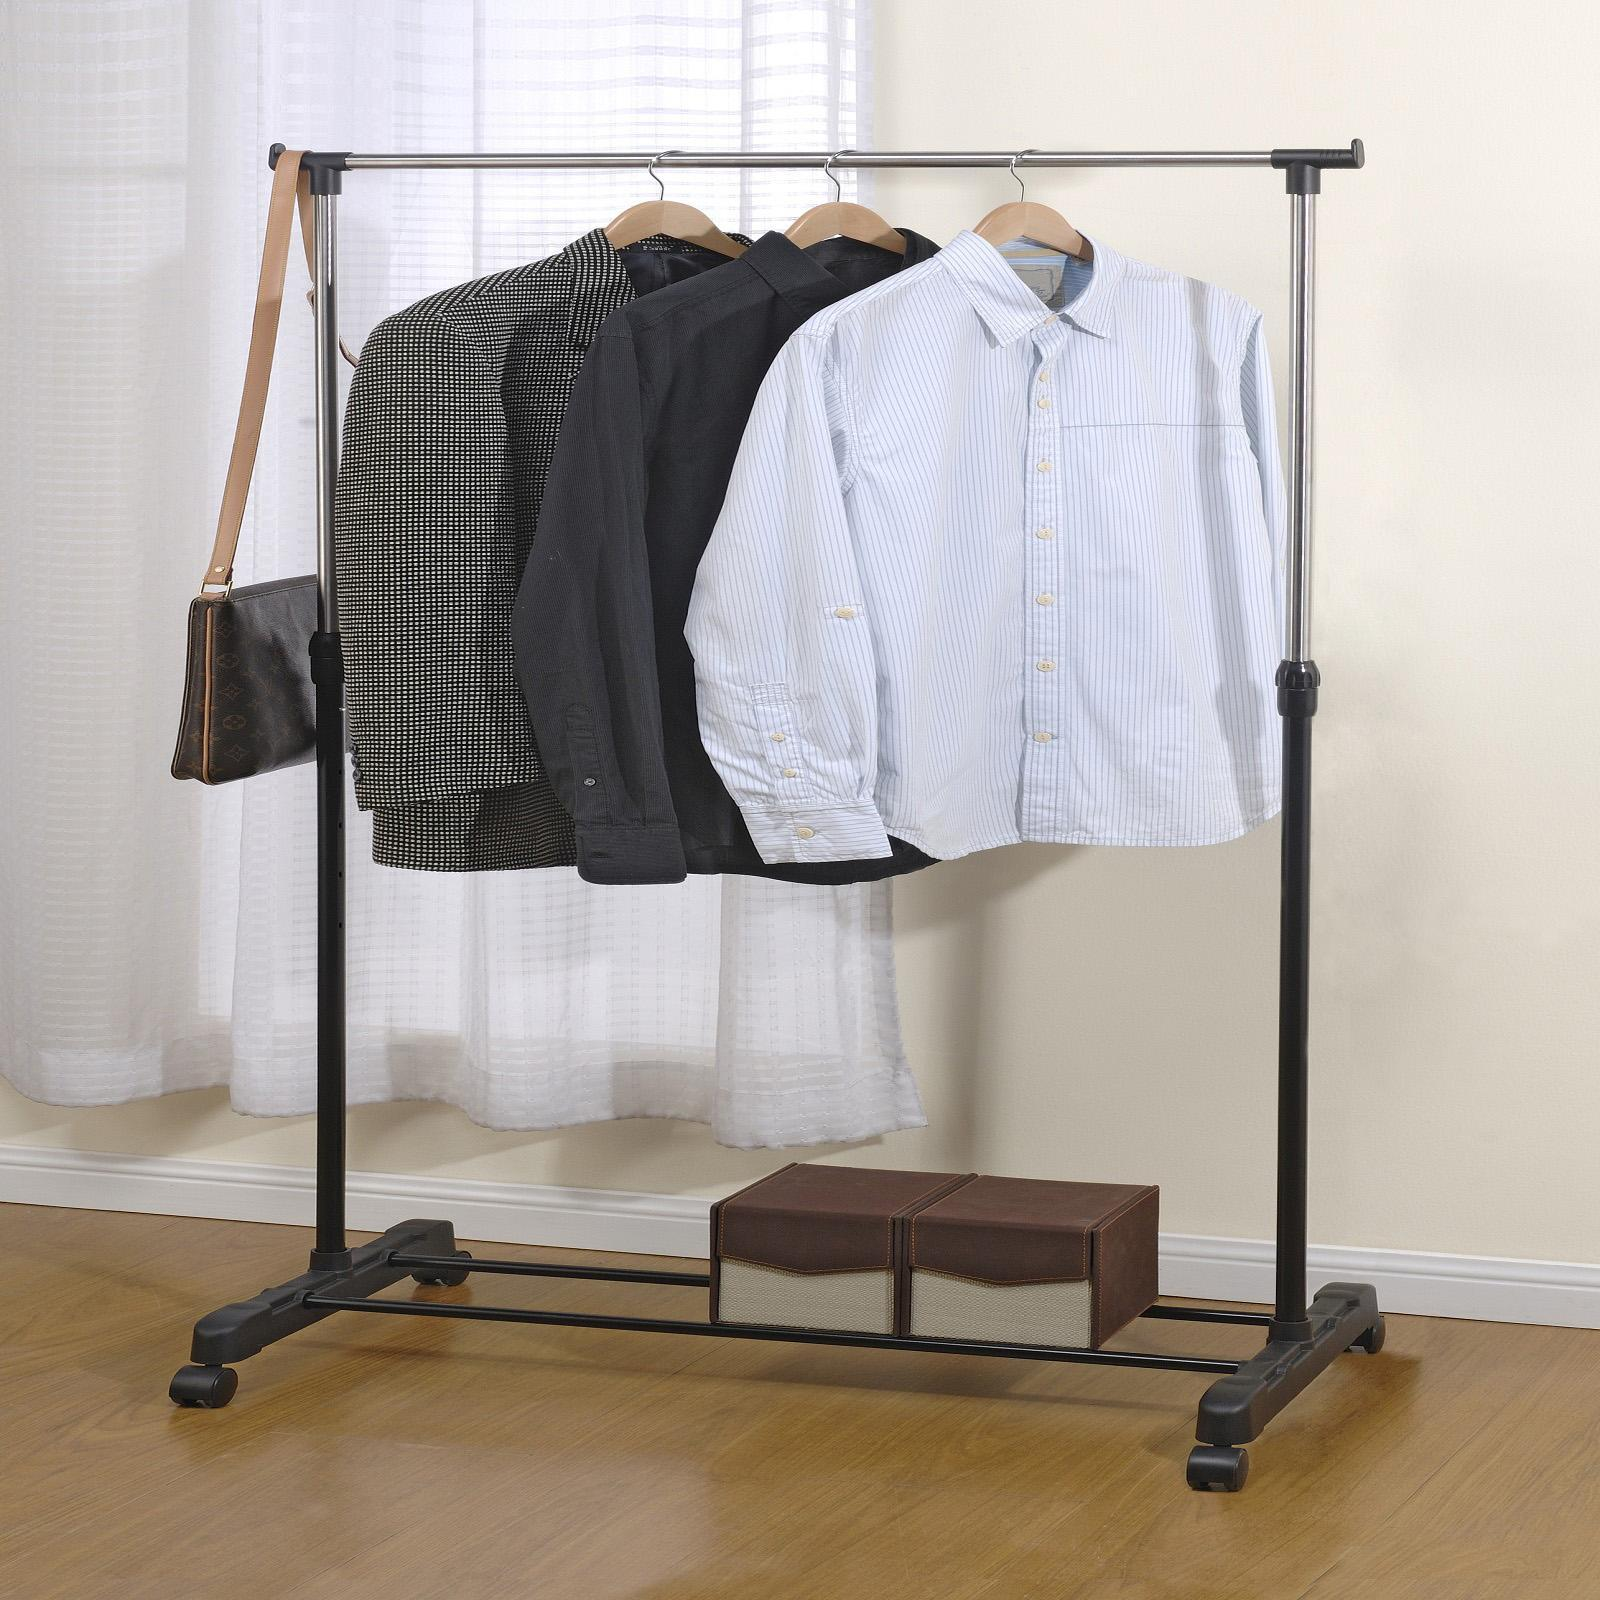 Homejoy Garment Rack - Home Organizer